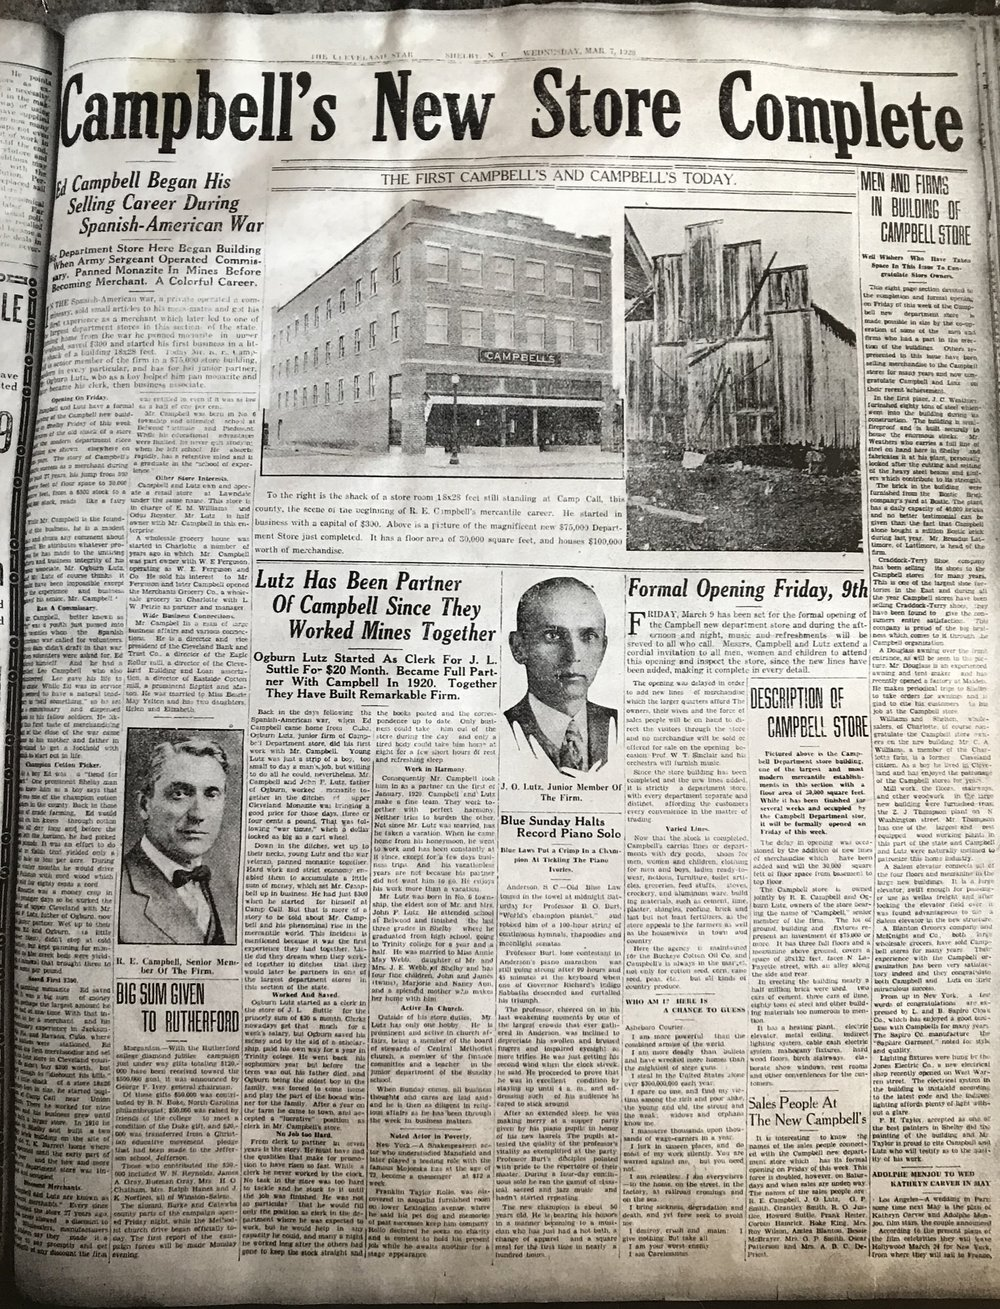 A January, 1928 newspaper proclaims the Campbell Building completion.